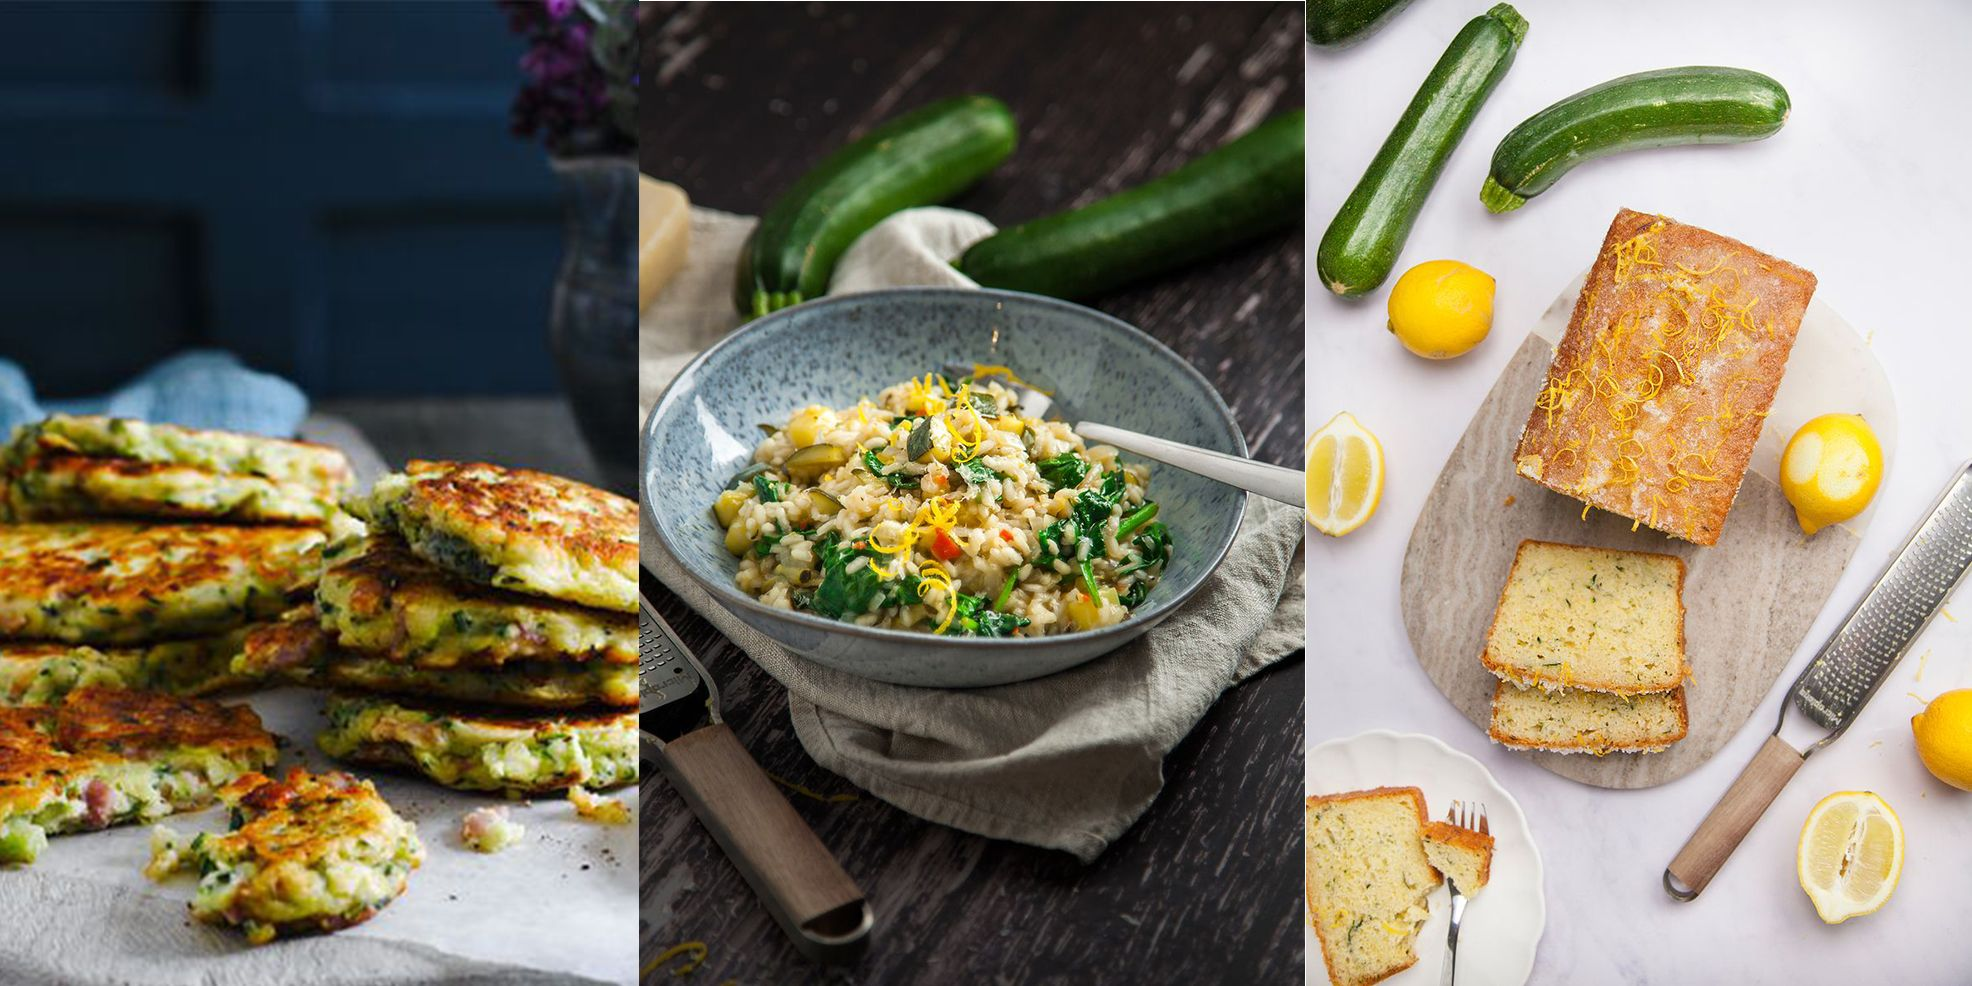 Best Courgette Recipes 2021